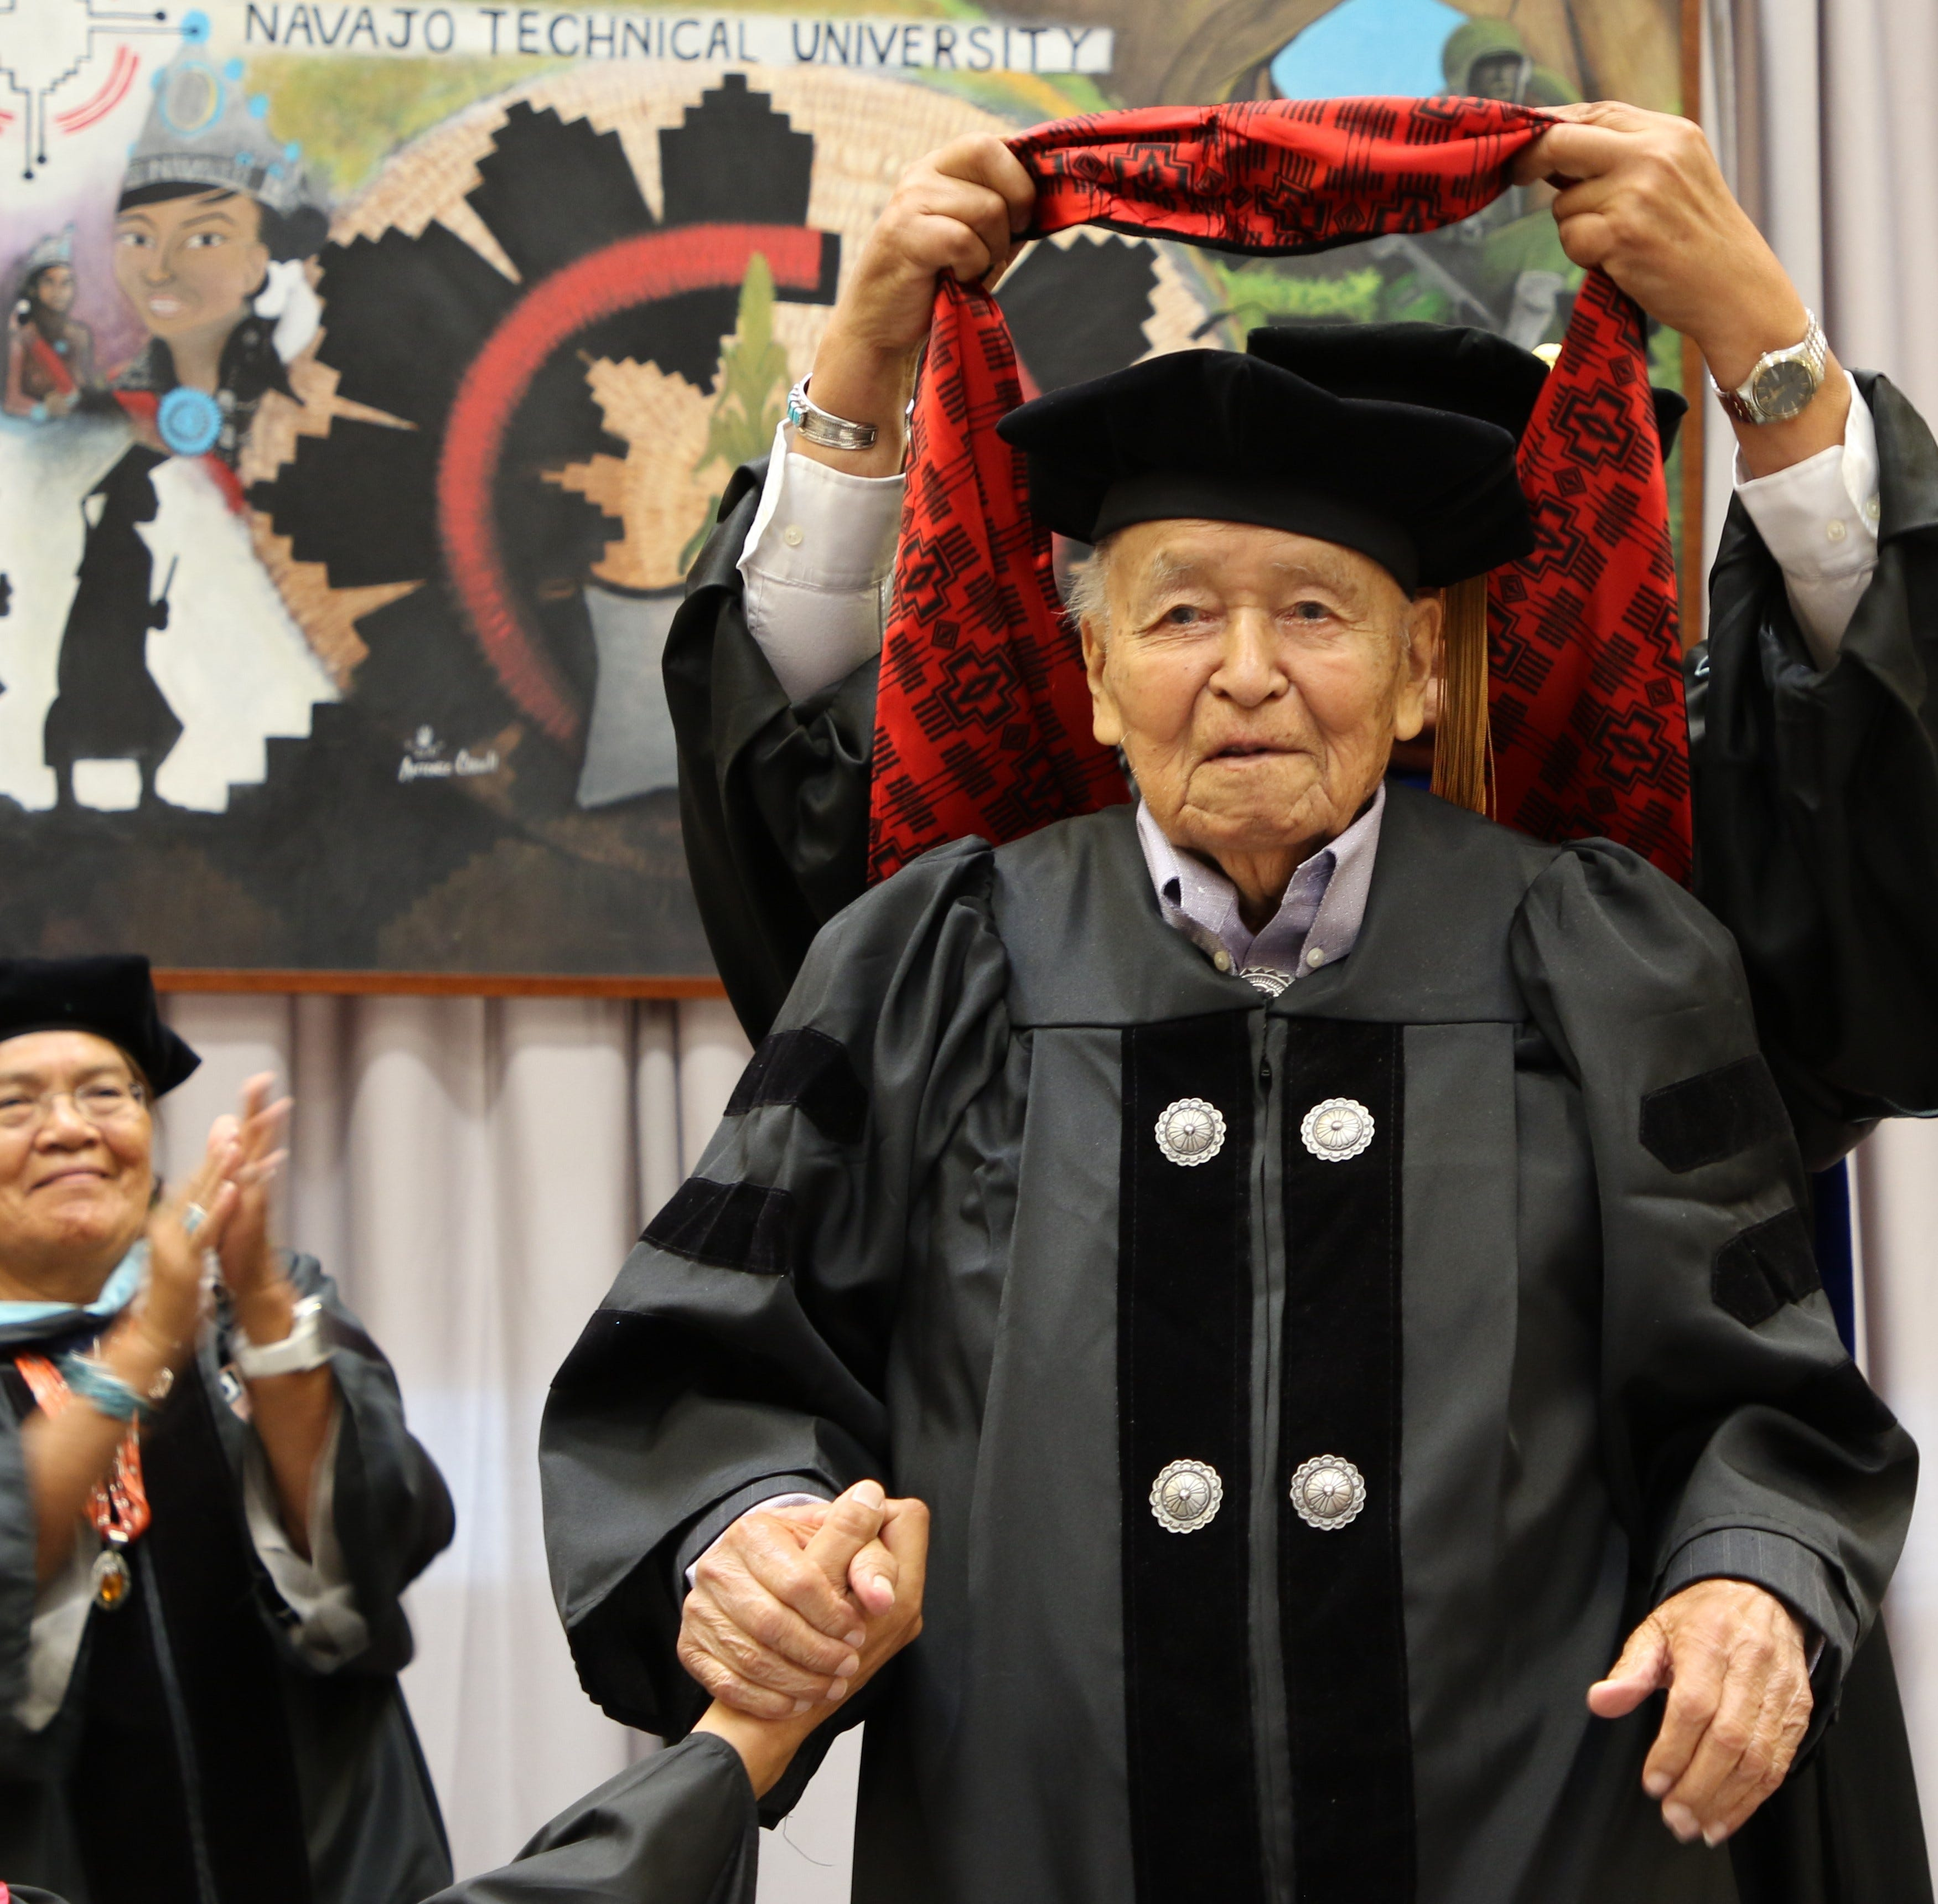 Navajo Technical University confers first honorary doctoral degree to John Pinto